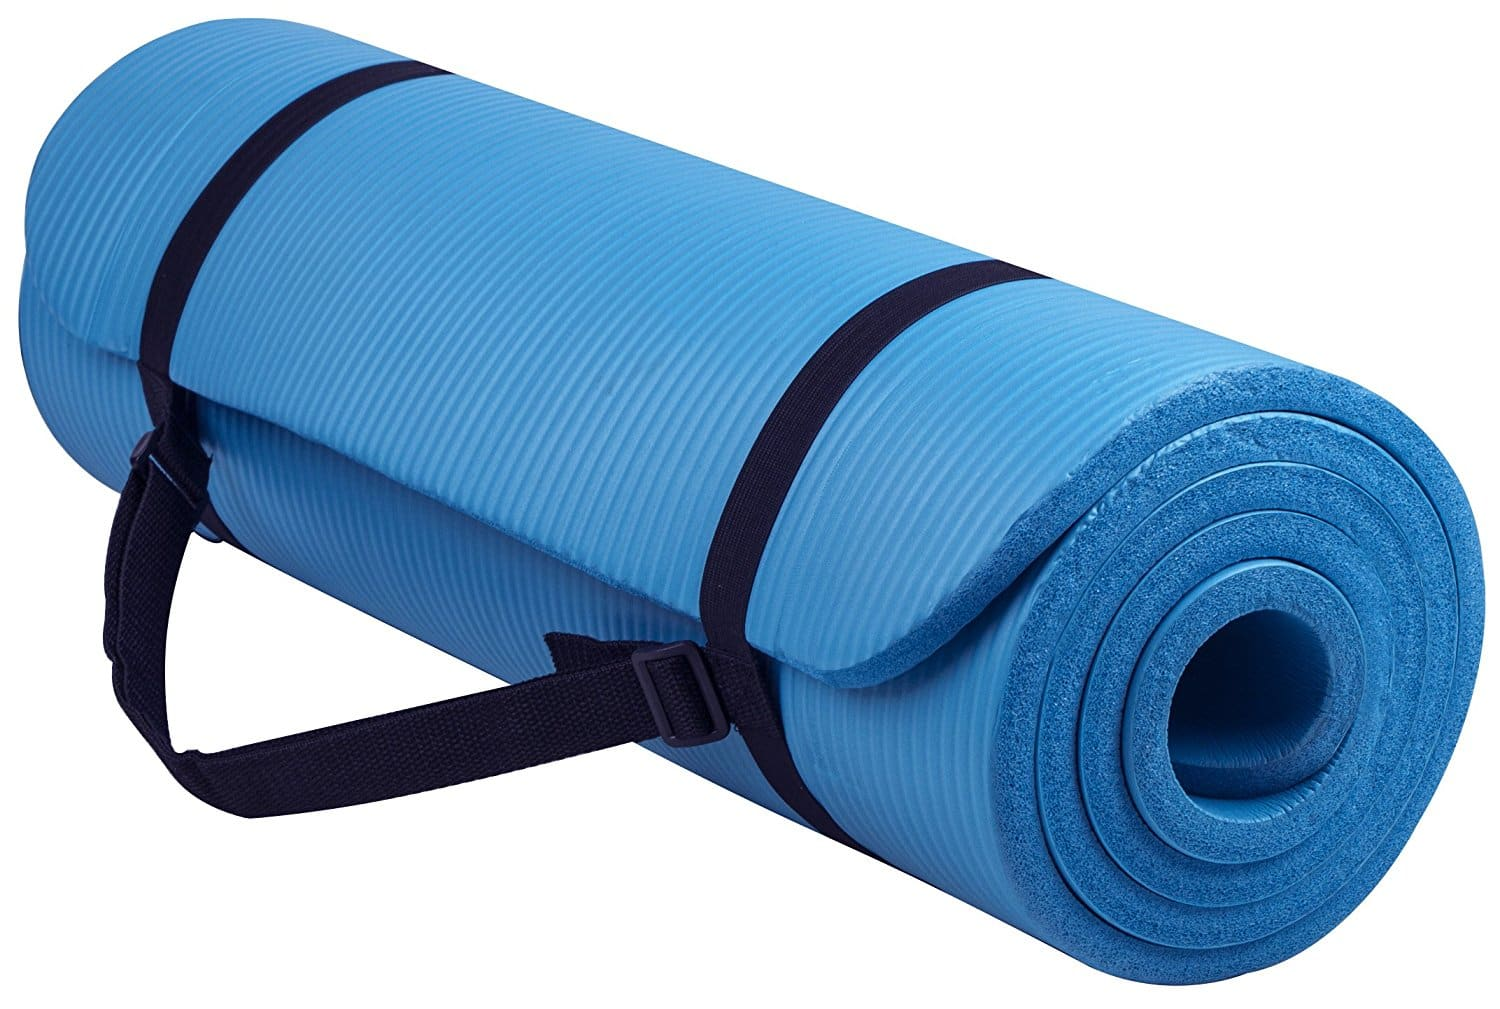 BalanceFrom All-Purpose Exercise Yoga Mat (Blue) $12.17 + Free Store Pickup at Walmart or Free S&H w/ Prime